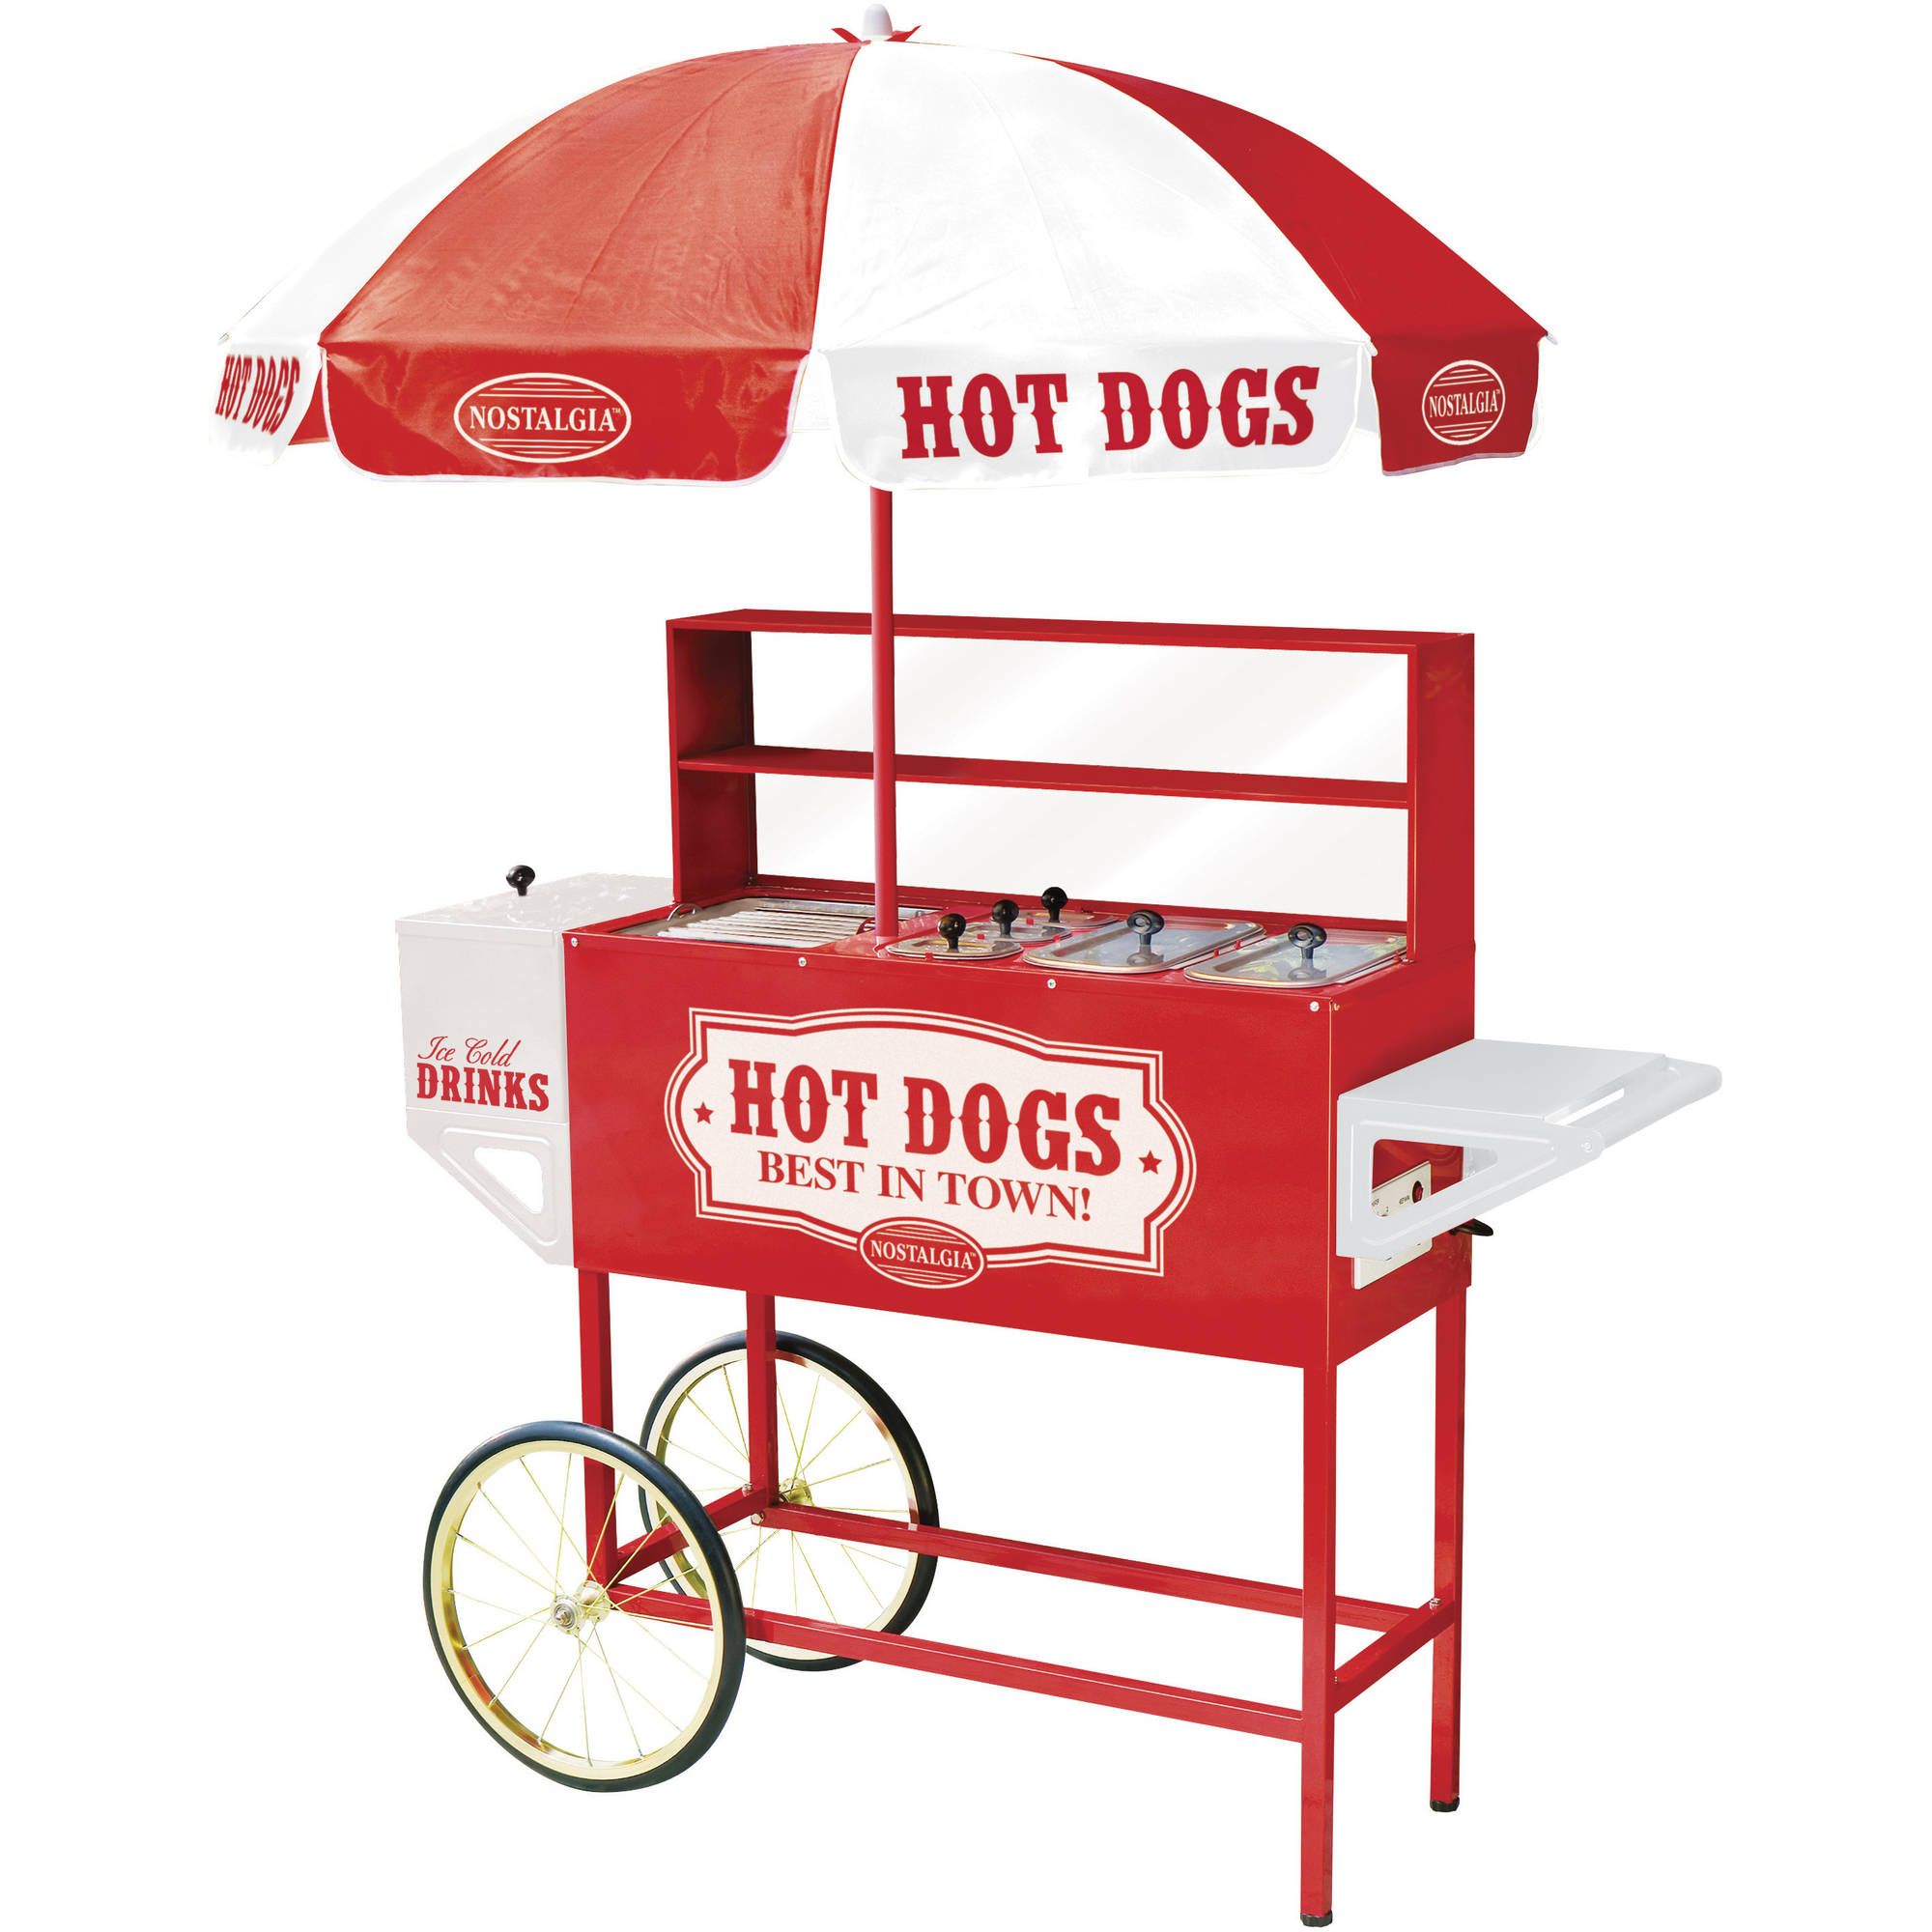 Nostalgia HDC701 48-Inch Tall Vintage Series Commercial Hot Dog Cart with Umbrella, Steamer, Roller Grill & Cold Drink Chest